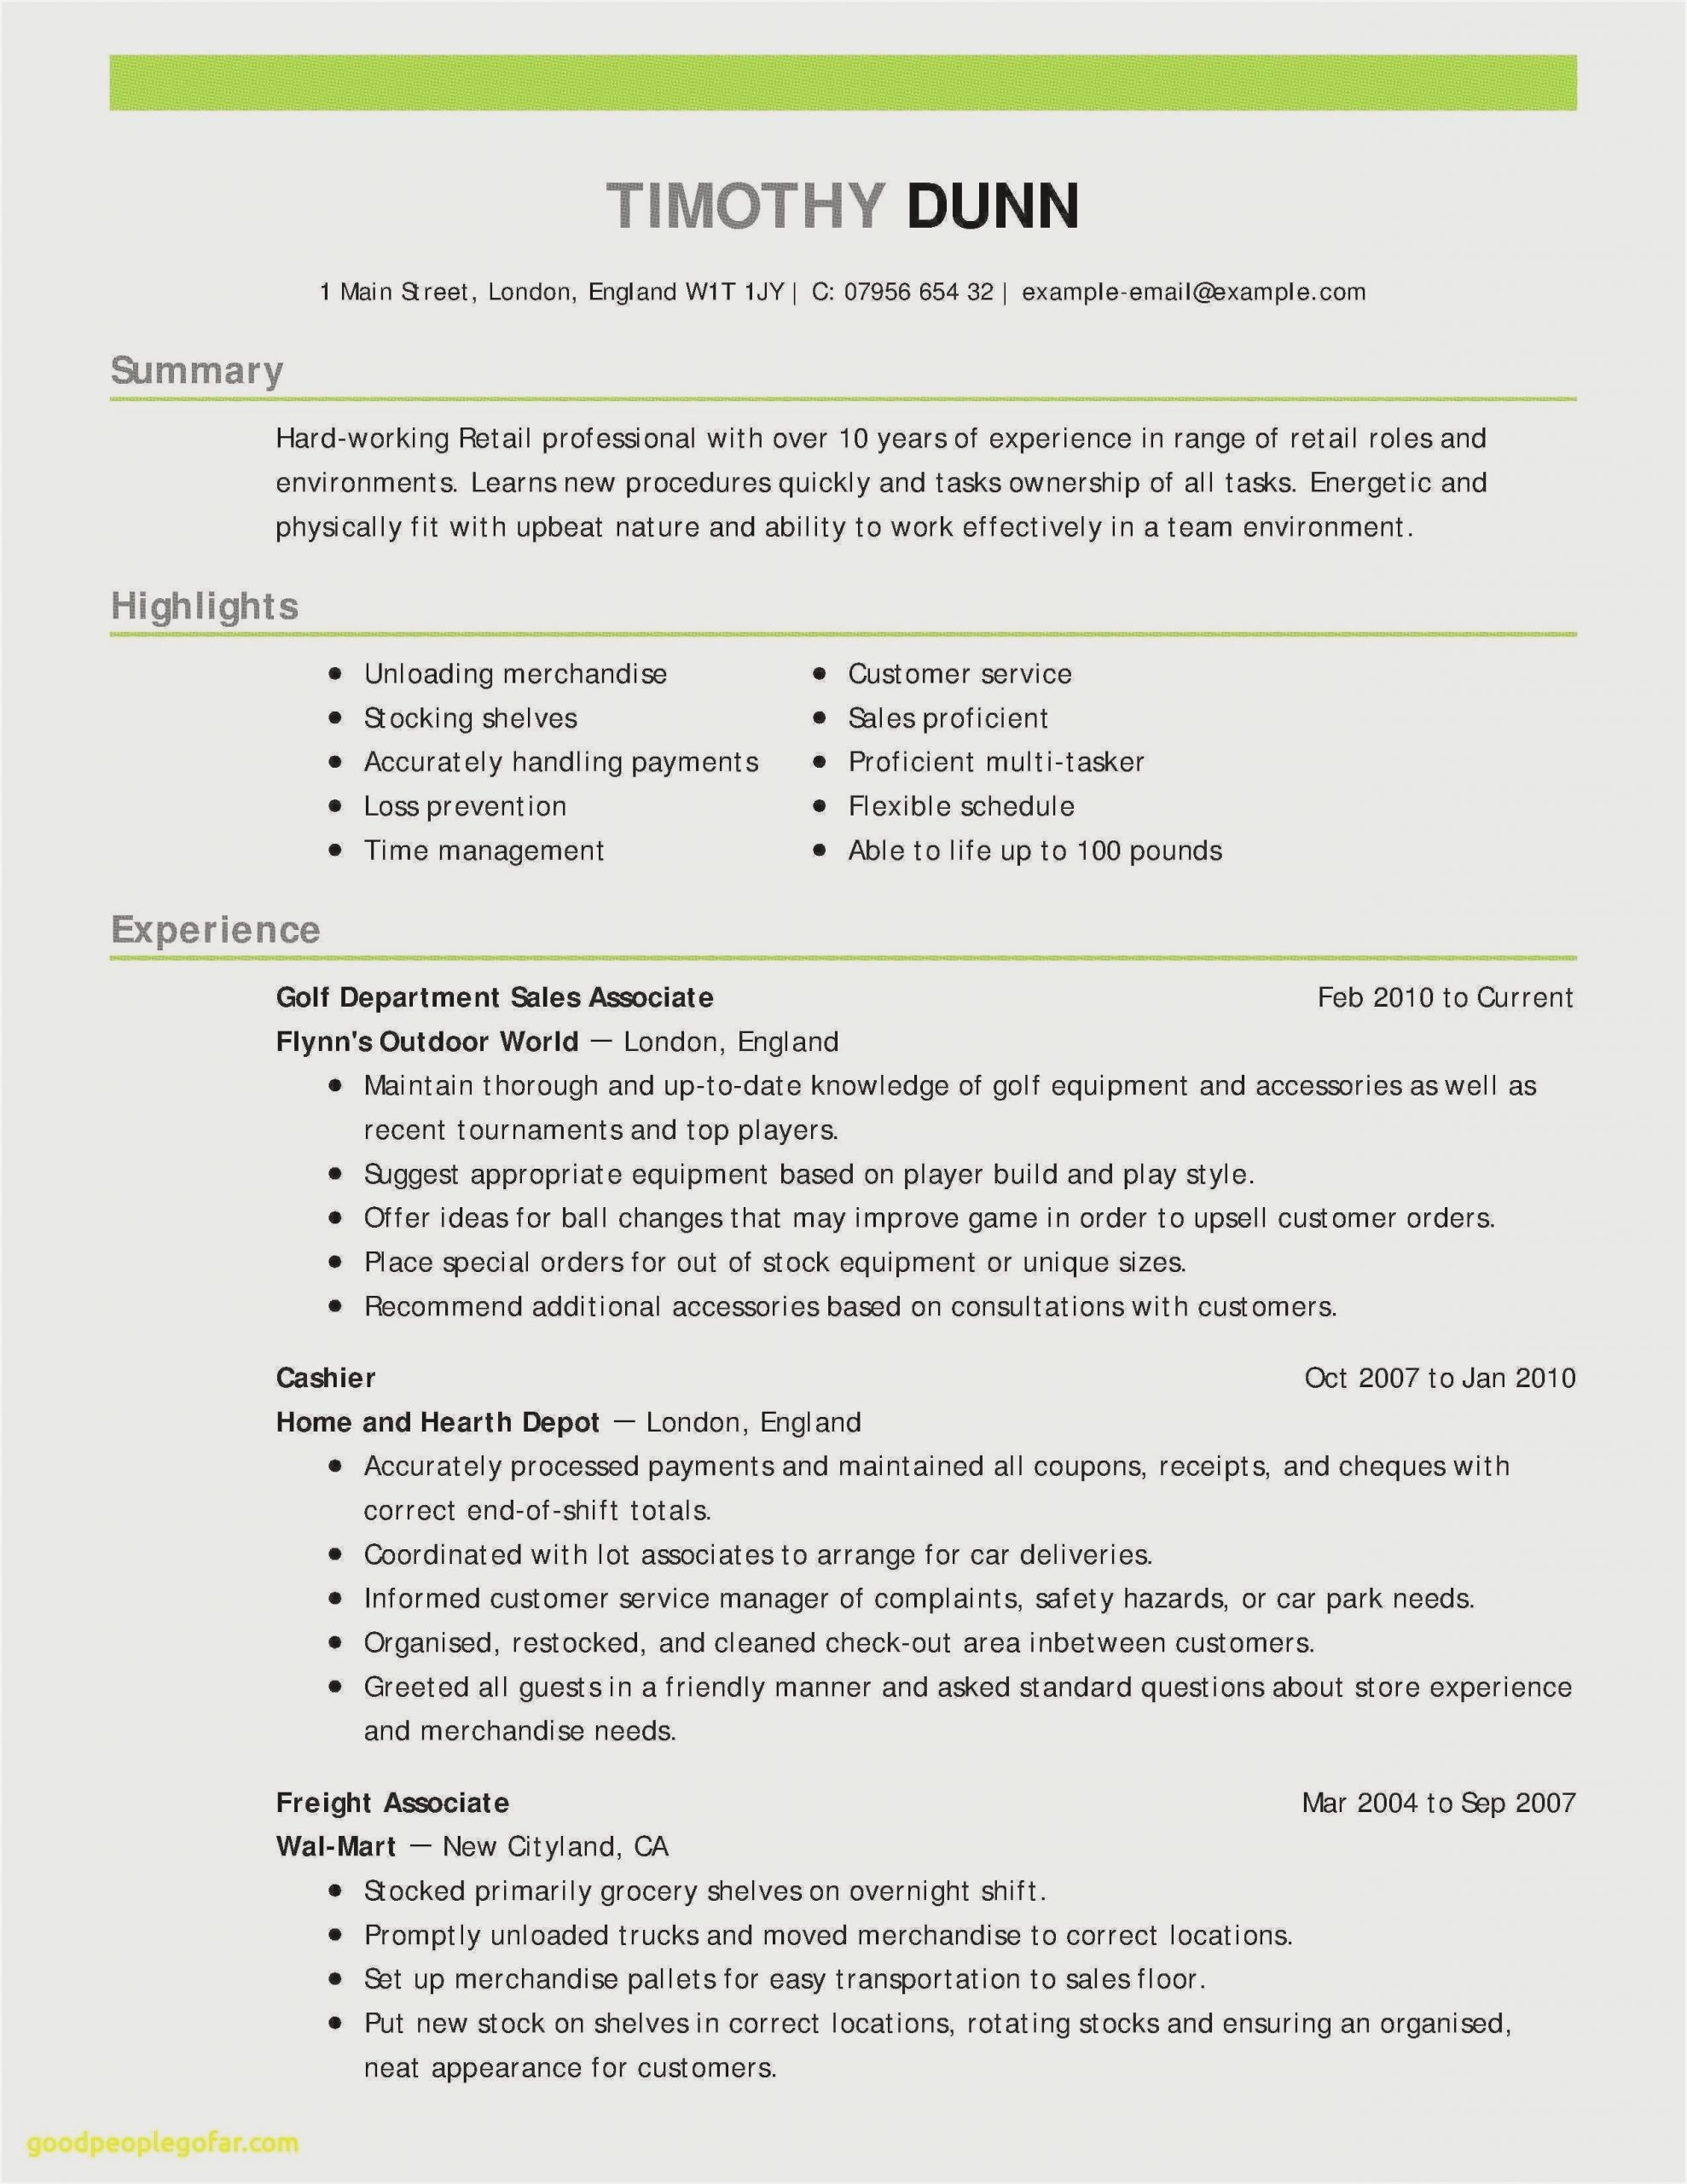 basic resume format examples sample scaled say example of objective for ojt writing Resume Basic Resume Examples 2019